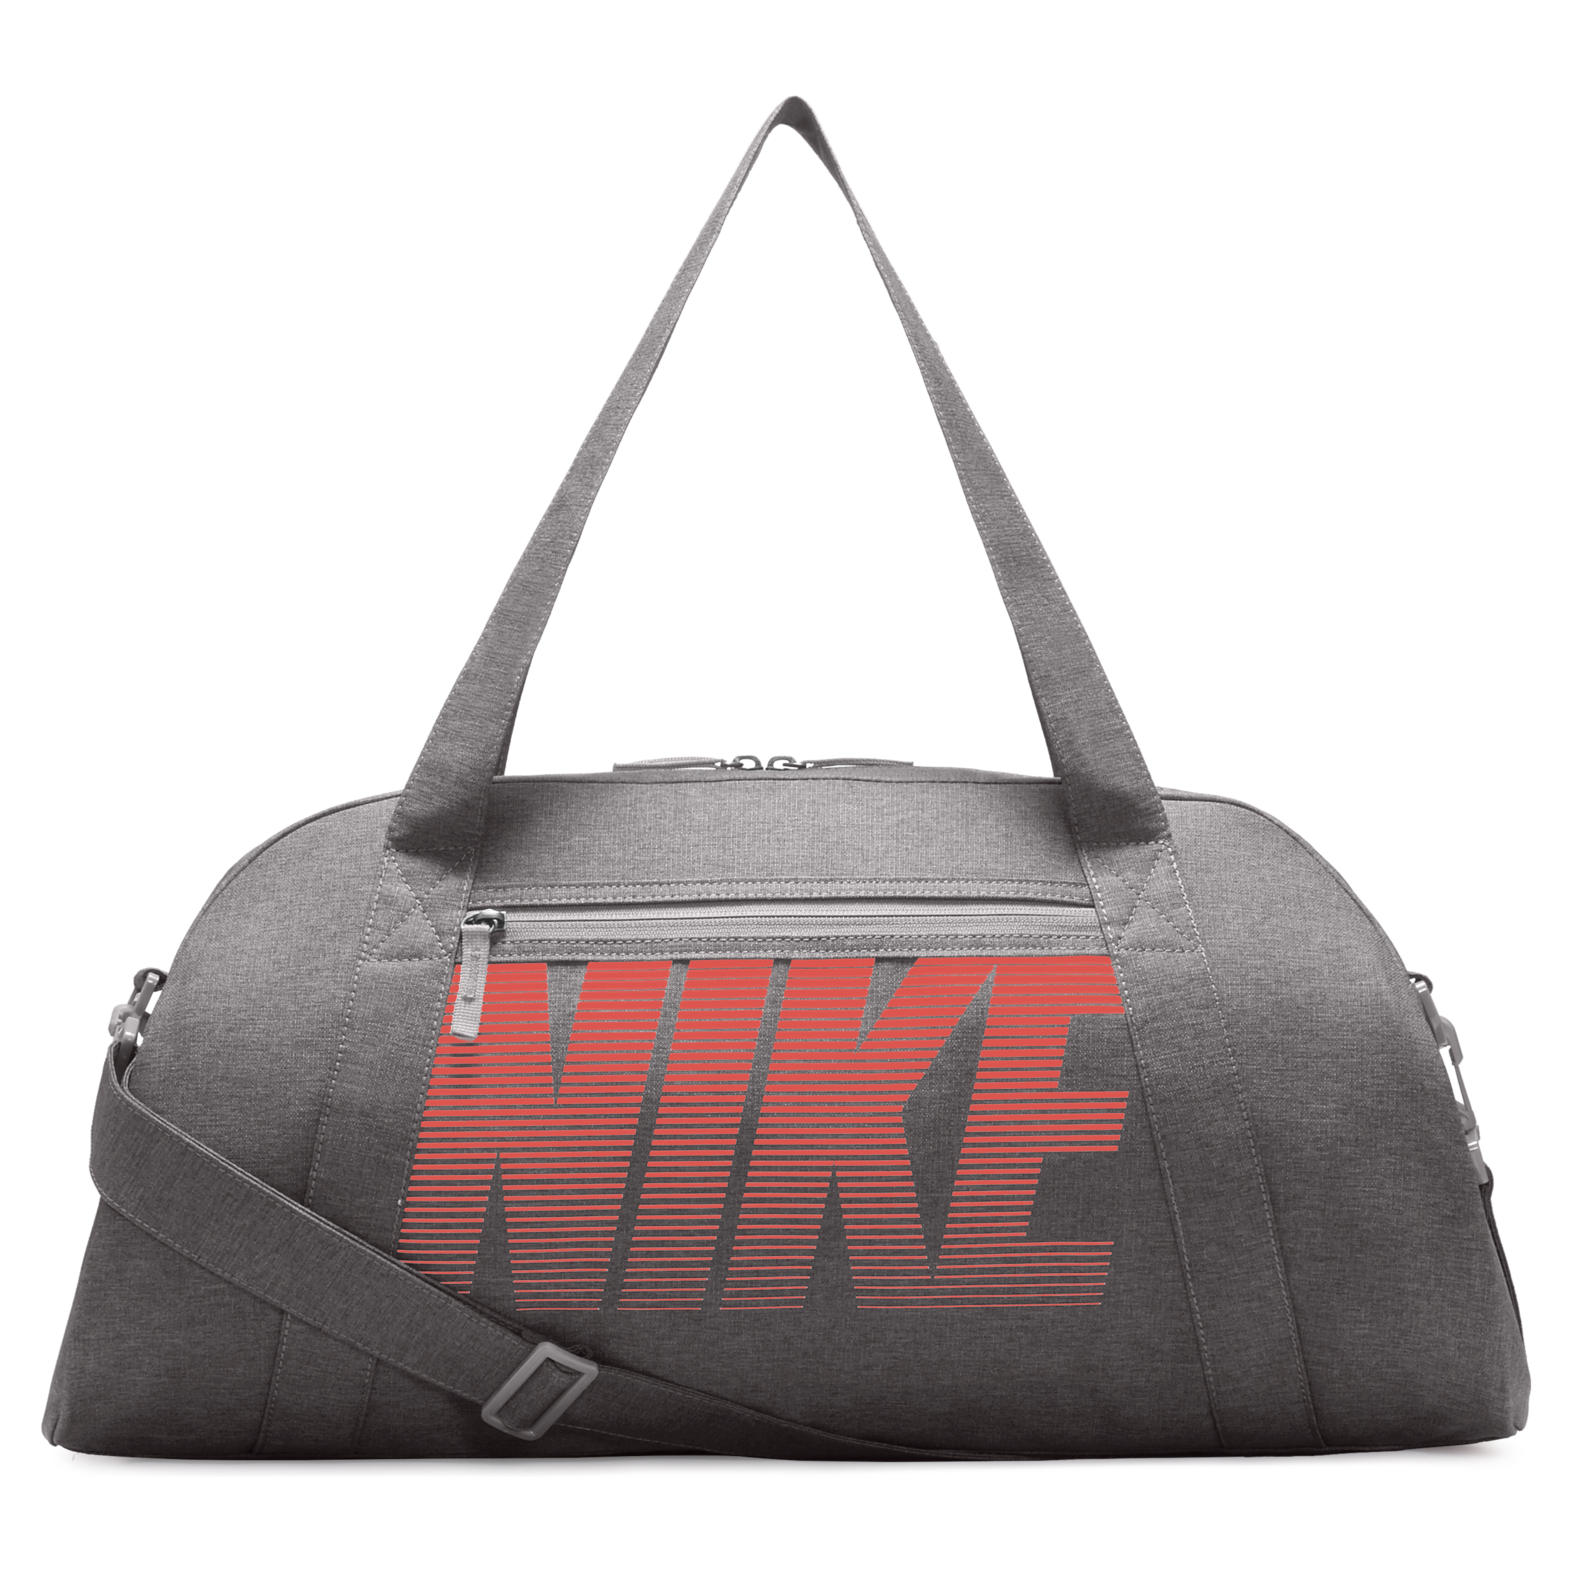 300b9c5b51 NIKE GYM CLUB TRAINING DUFFEL BAG - Poobie Naidoos